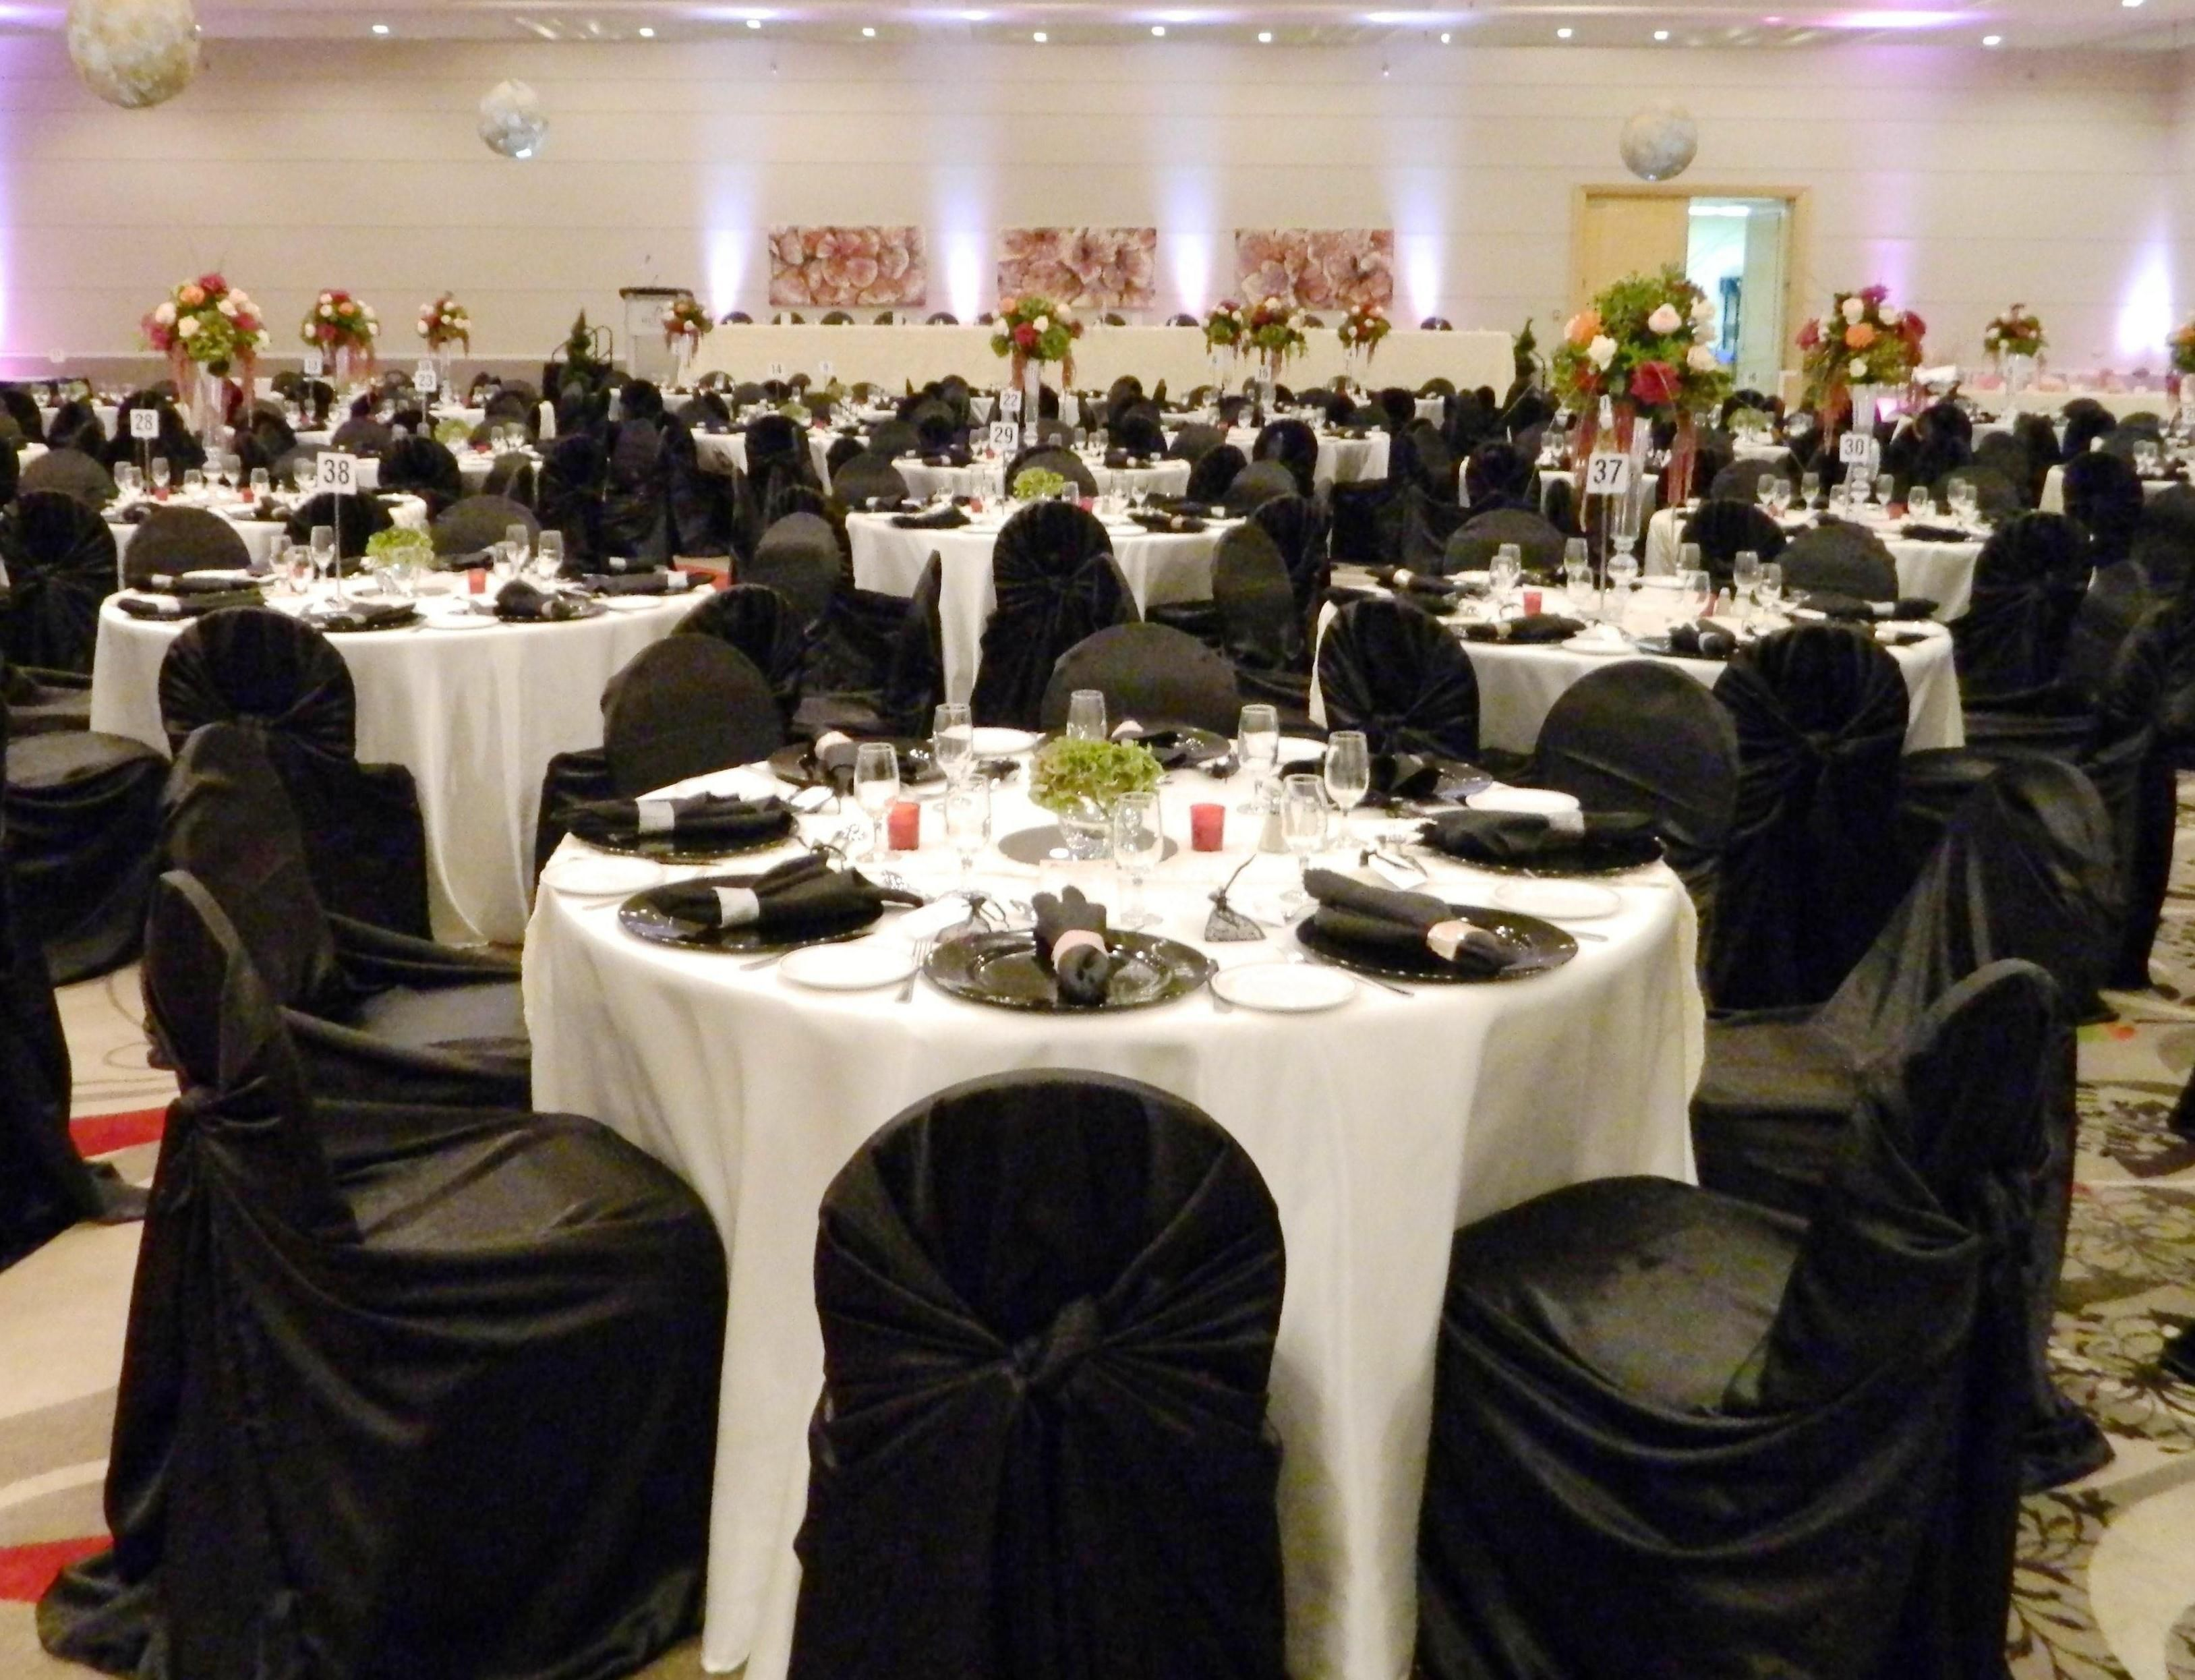 ivory chair covers with gold sash classroom organizer white tablecloths black runner napkins